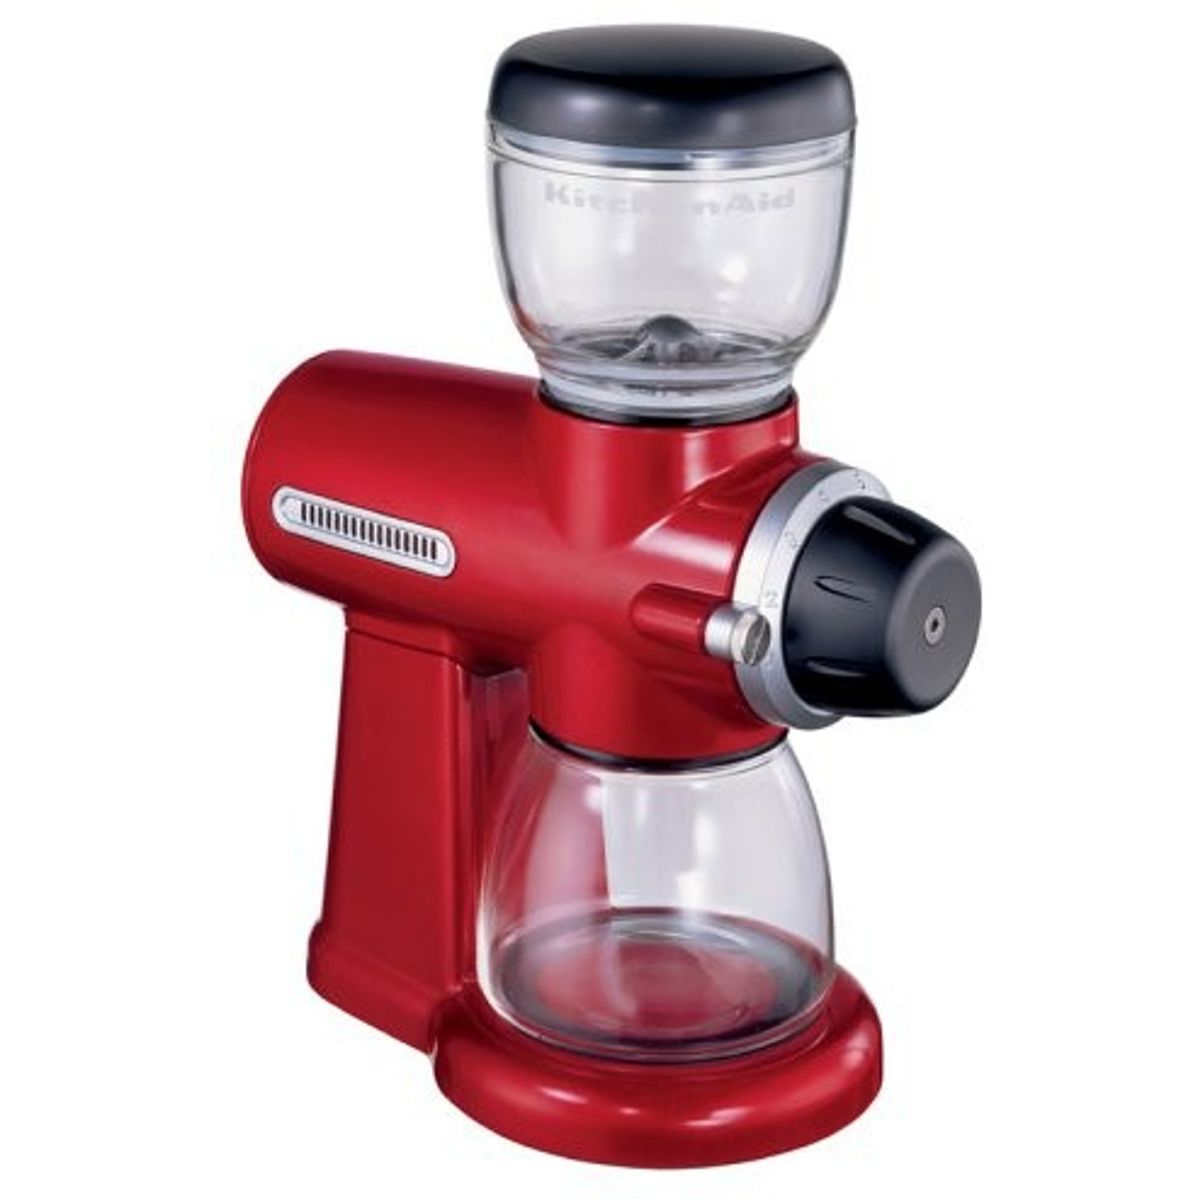 KitchenAid Artisan 5 KCG100EER